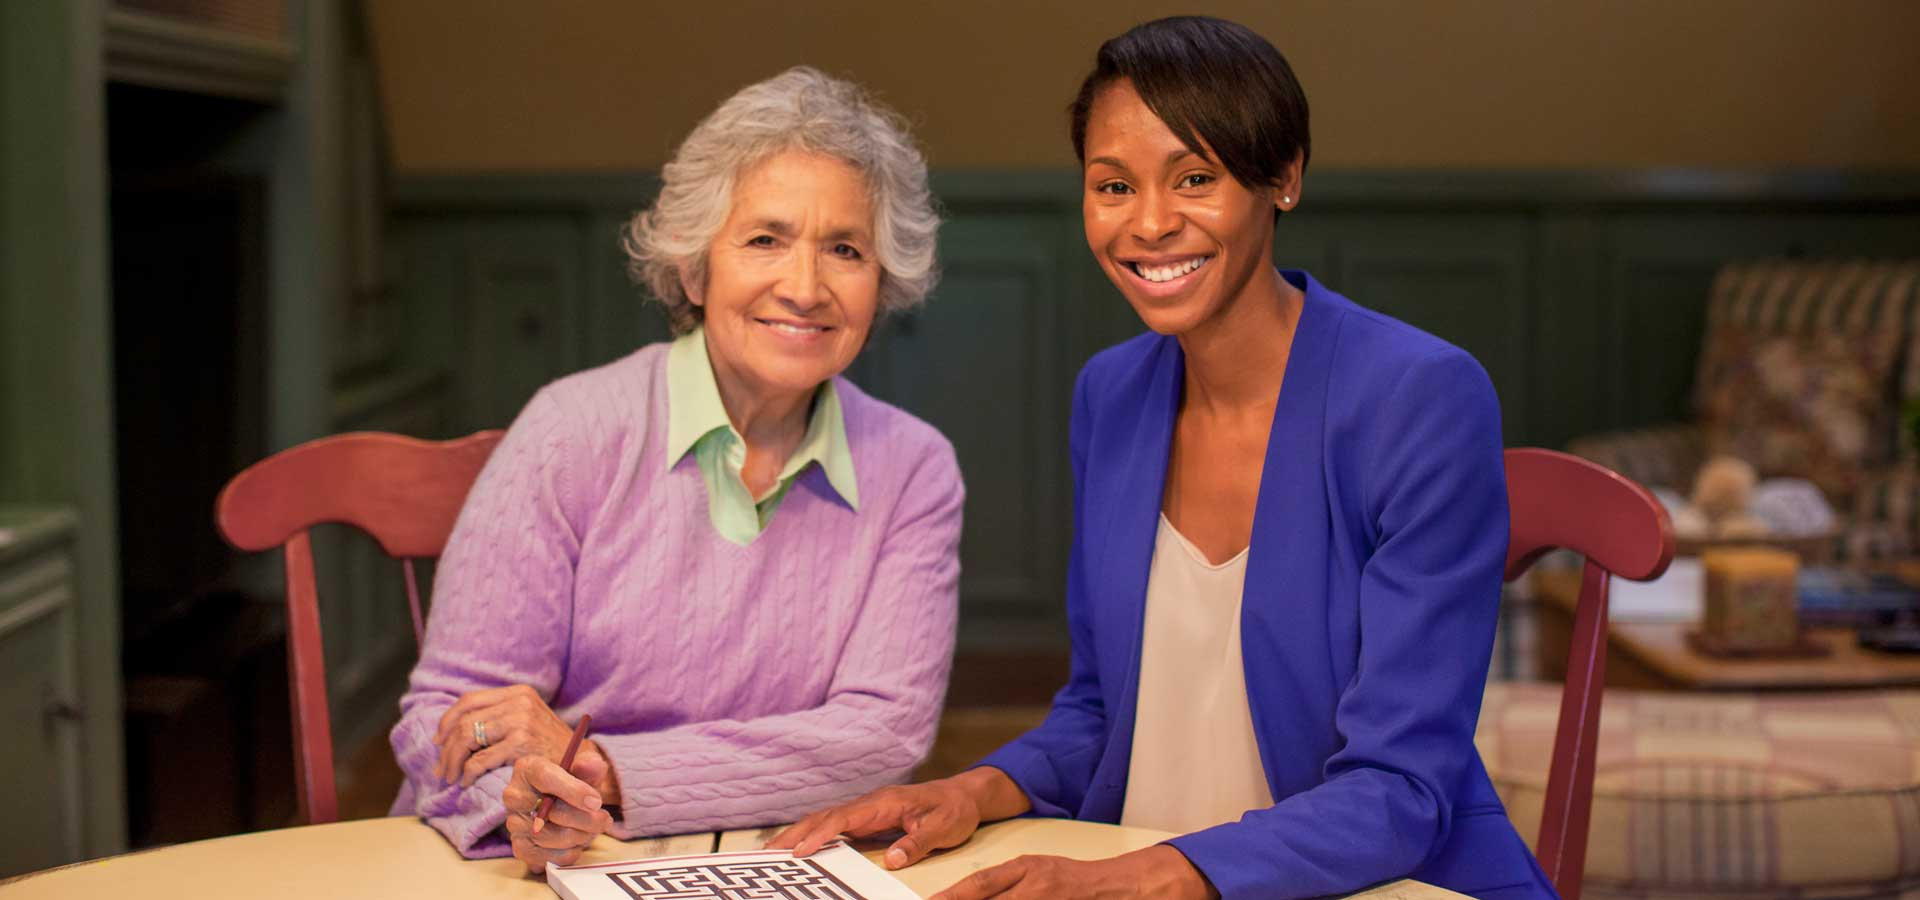 Non-Medical Home Care Services in Folsom, CA